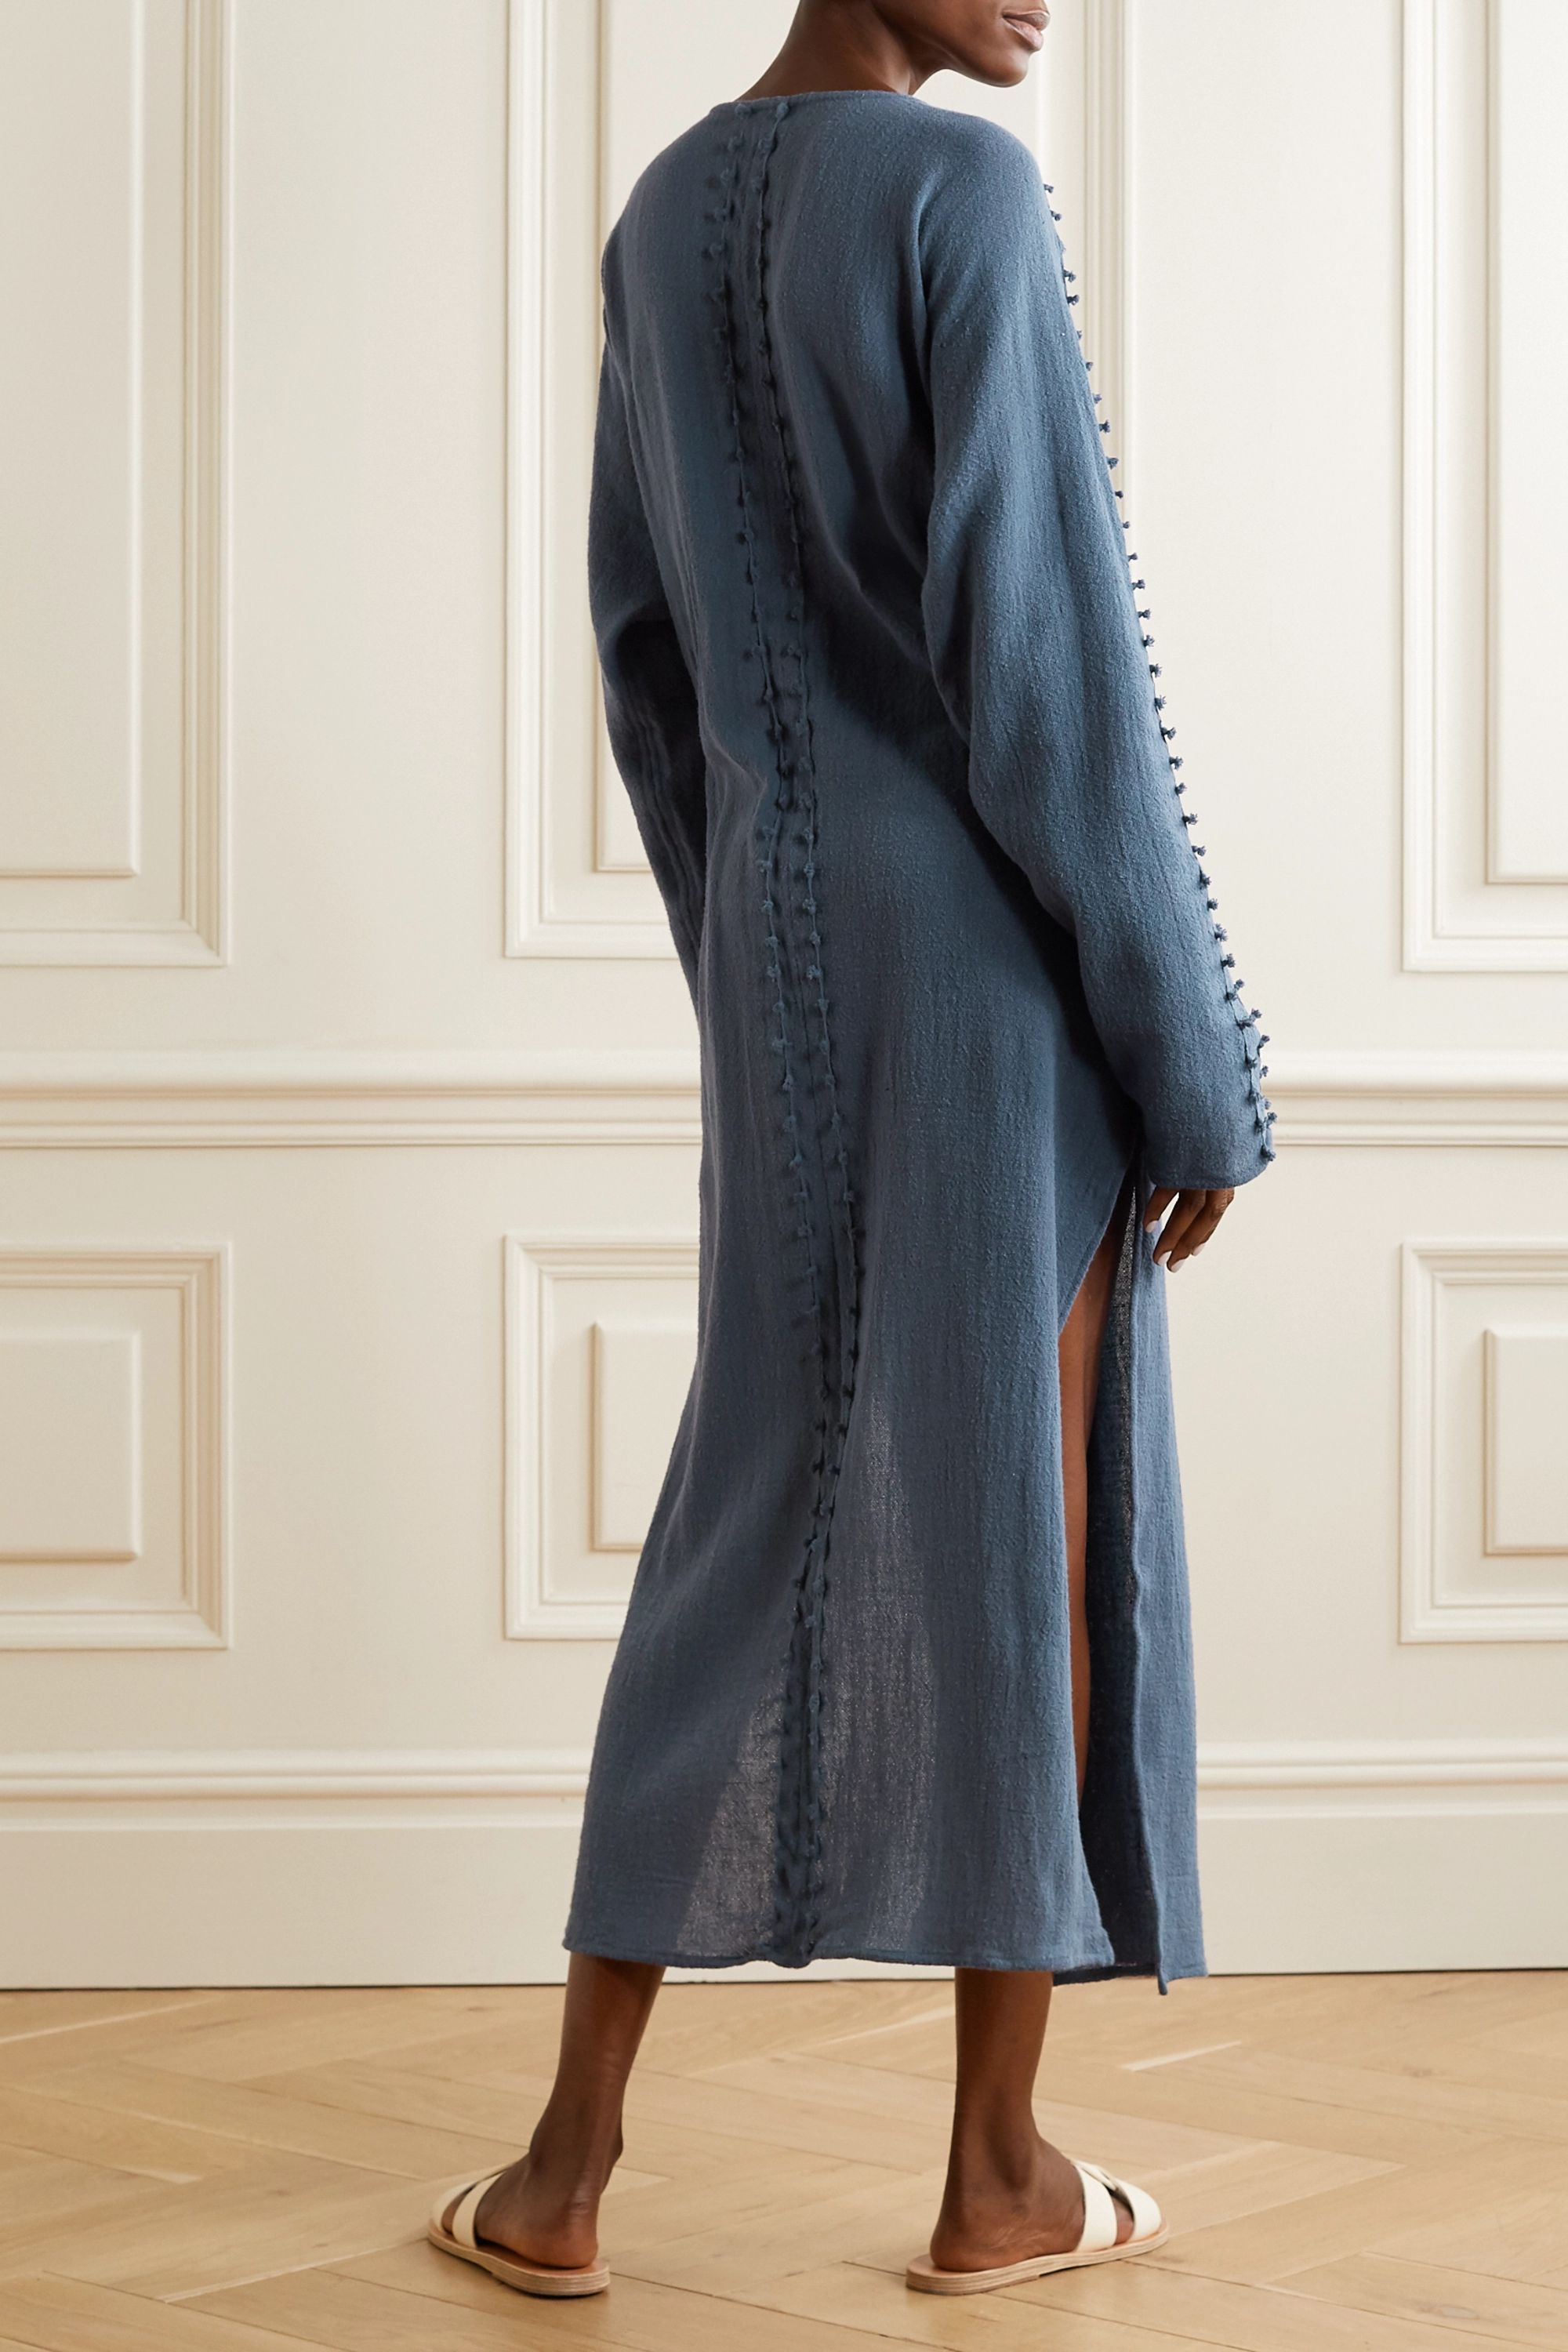 Caravana Kan fringed cotton-gauze robe